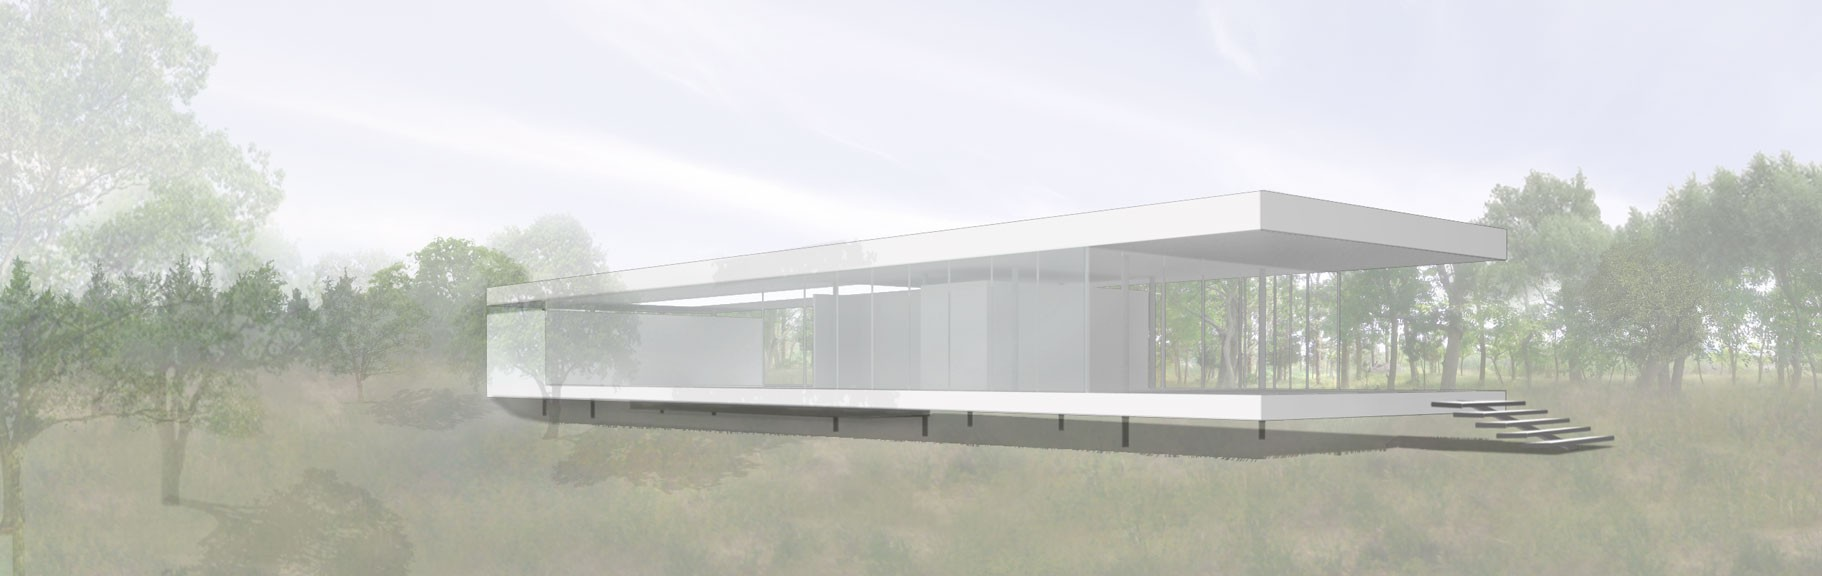 http://www.davidlingarchitect.com/files/gimgs/th-103_davidlingarchitect_davidling_demenil_02.jpg